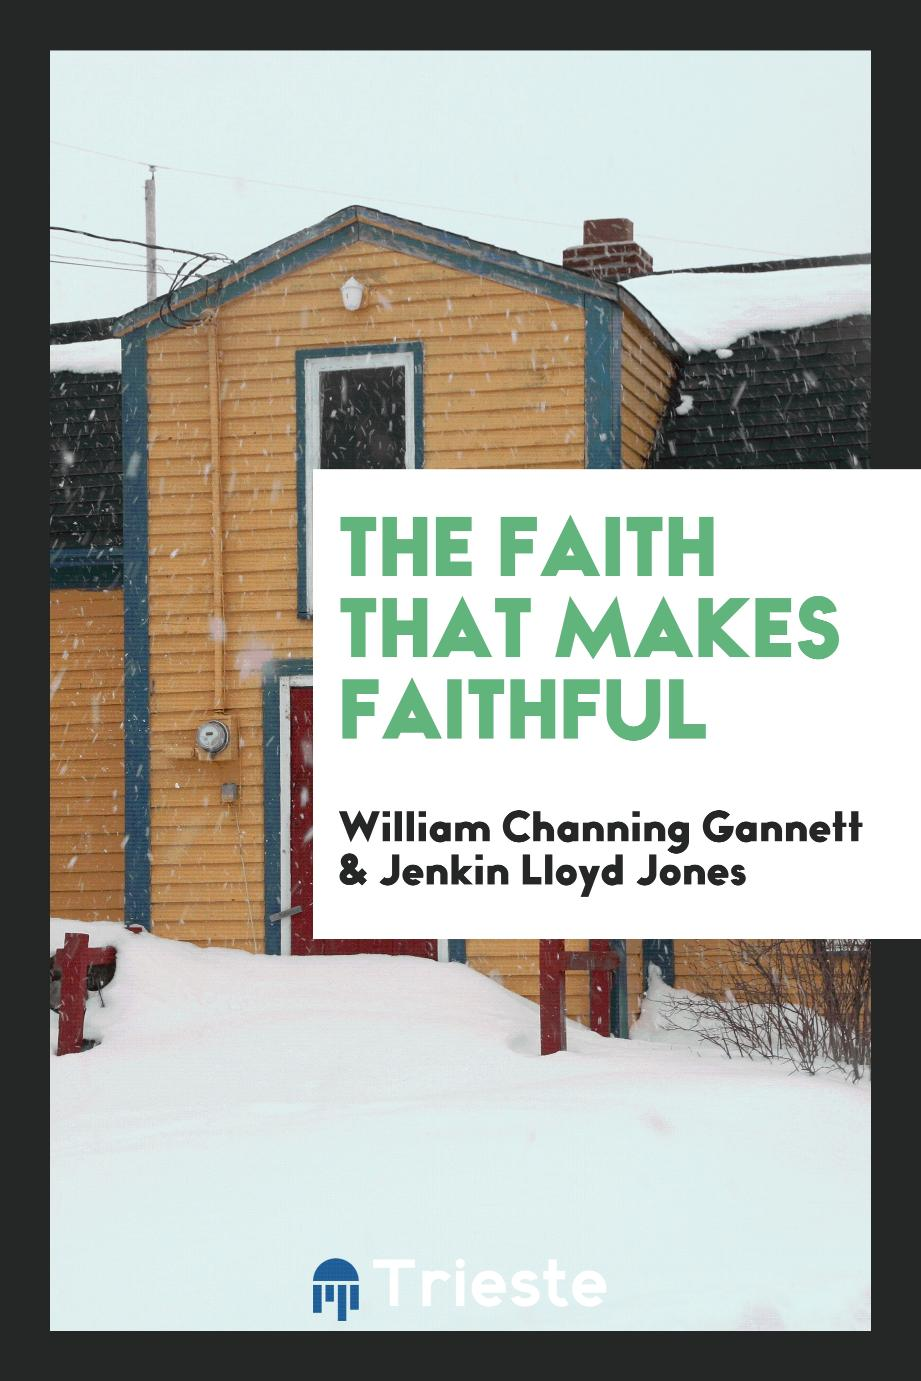 The faith that makes faithful